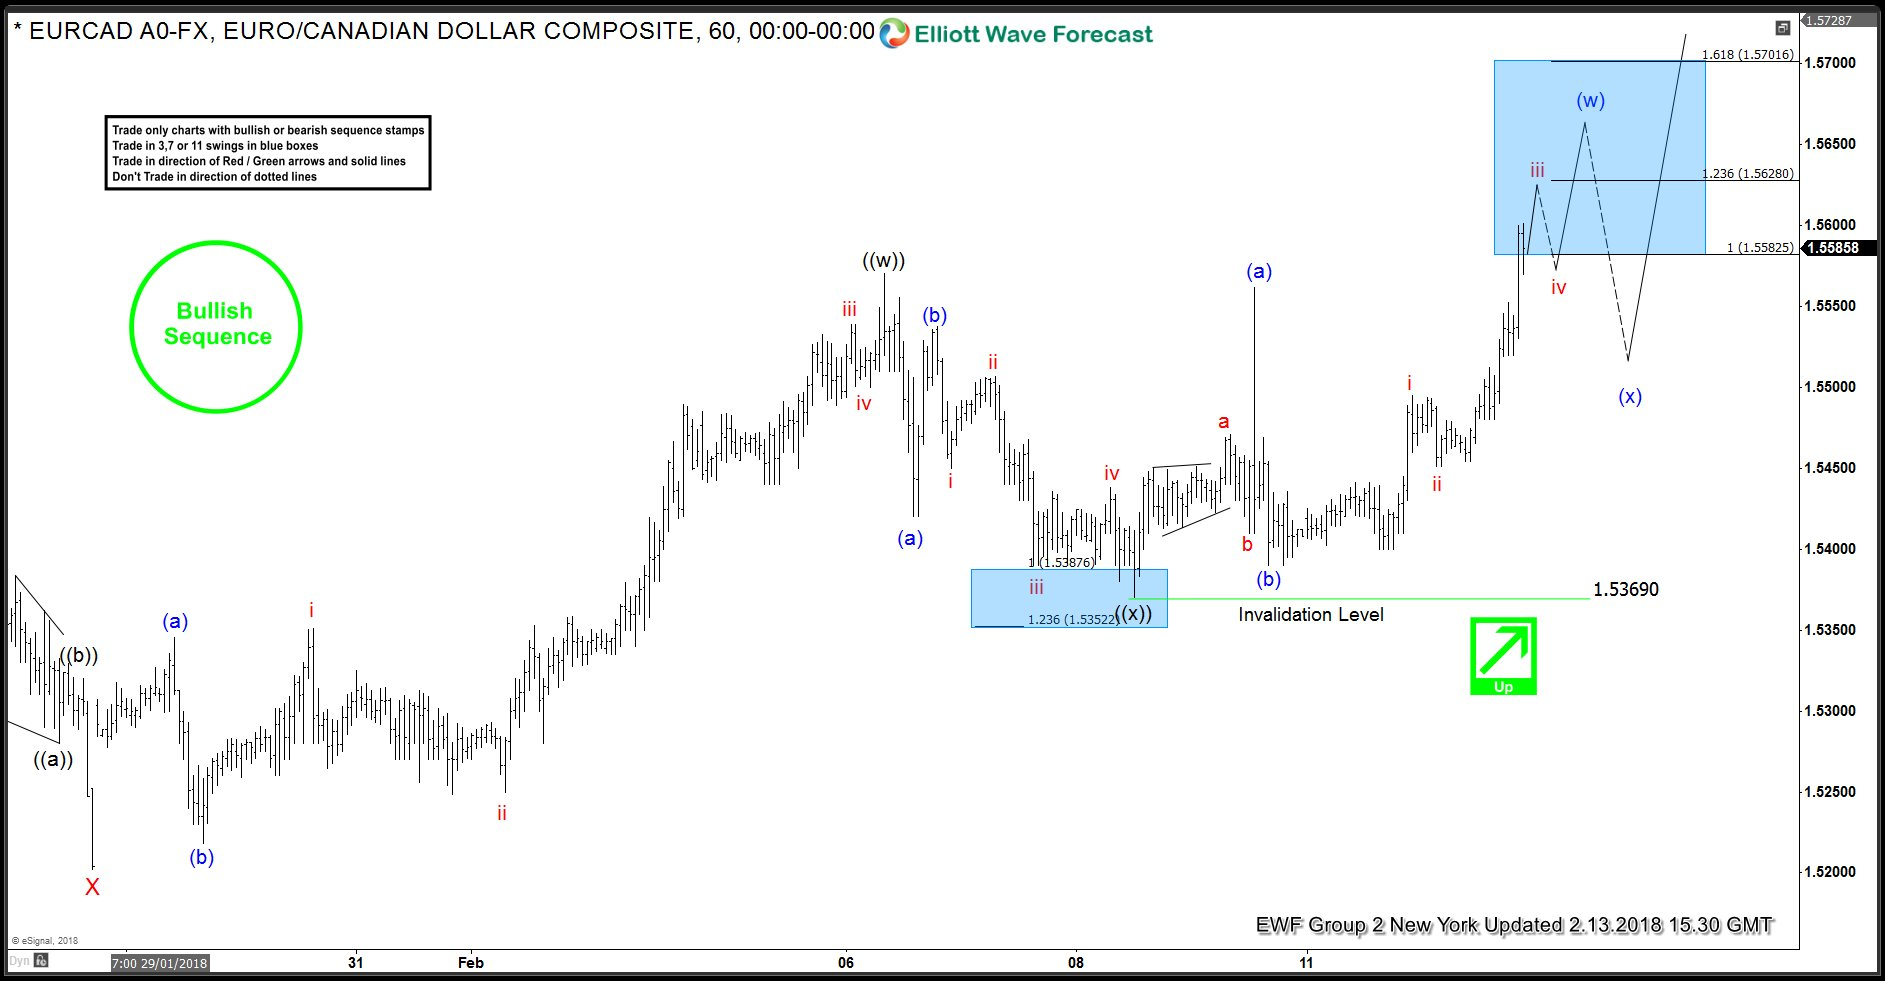 EURCAD Elliott Wave Analysis 2.13.2018